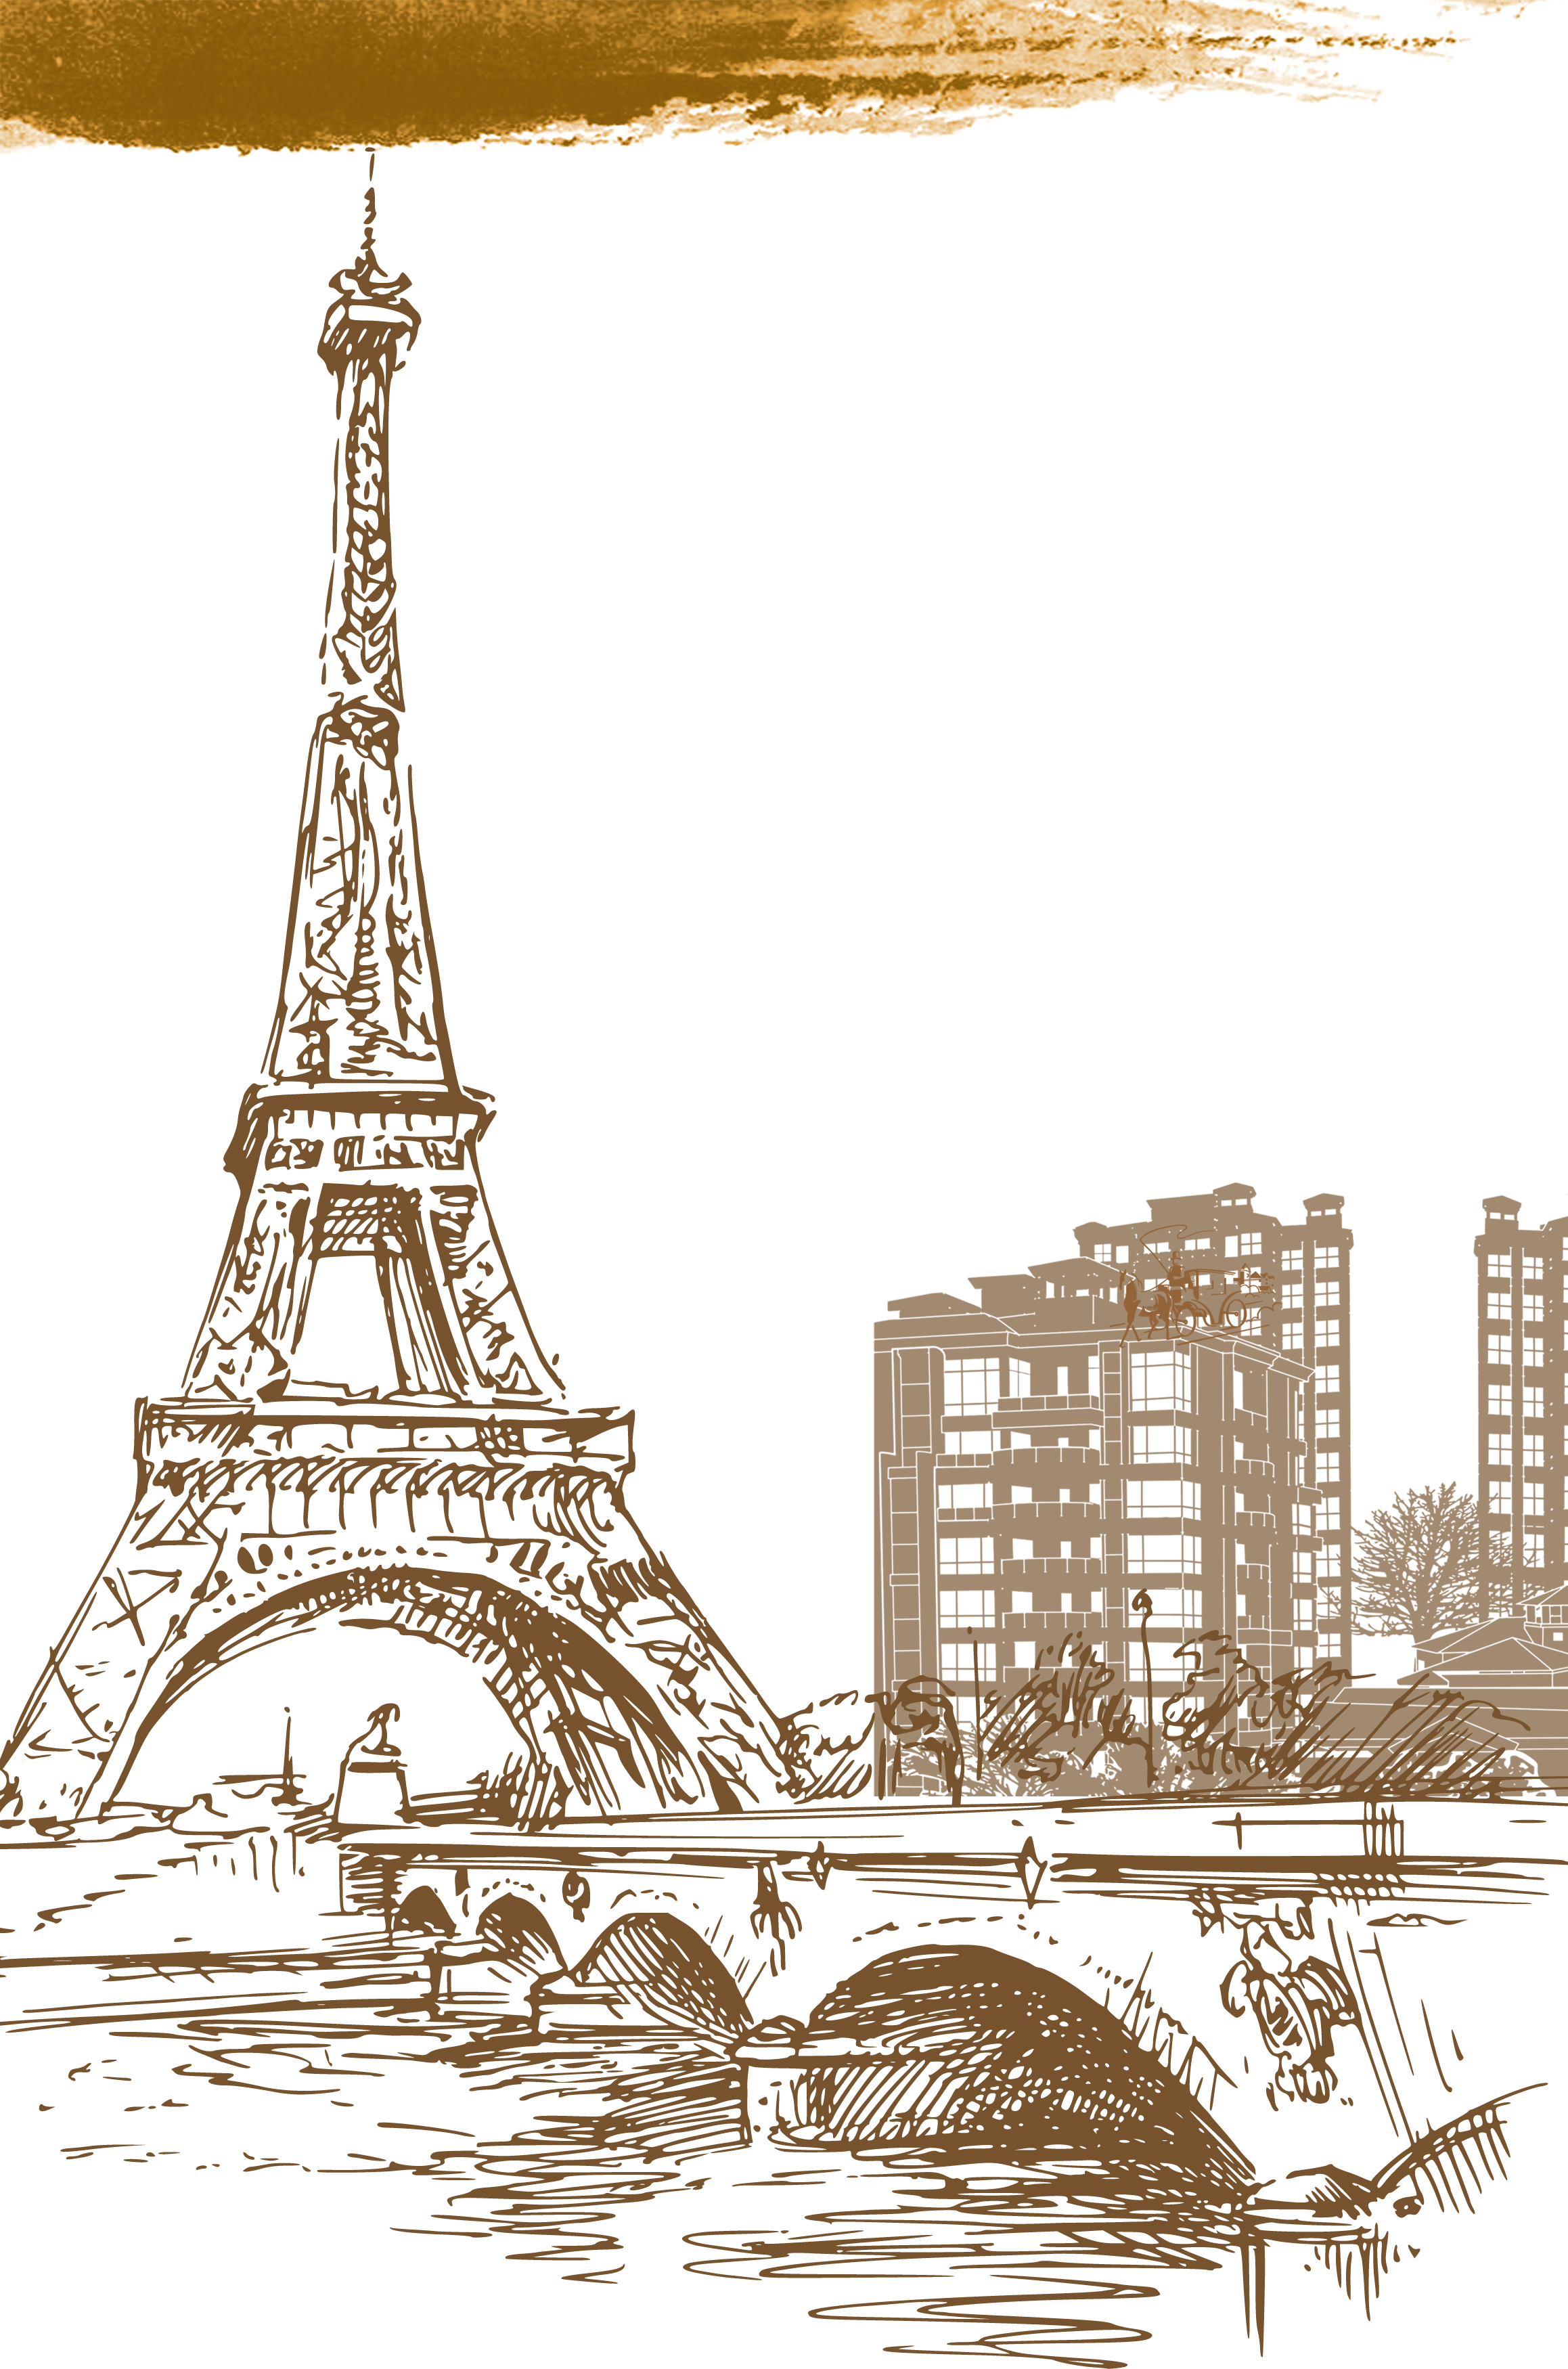 Paris background clipart images gallery for free download.